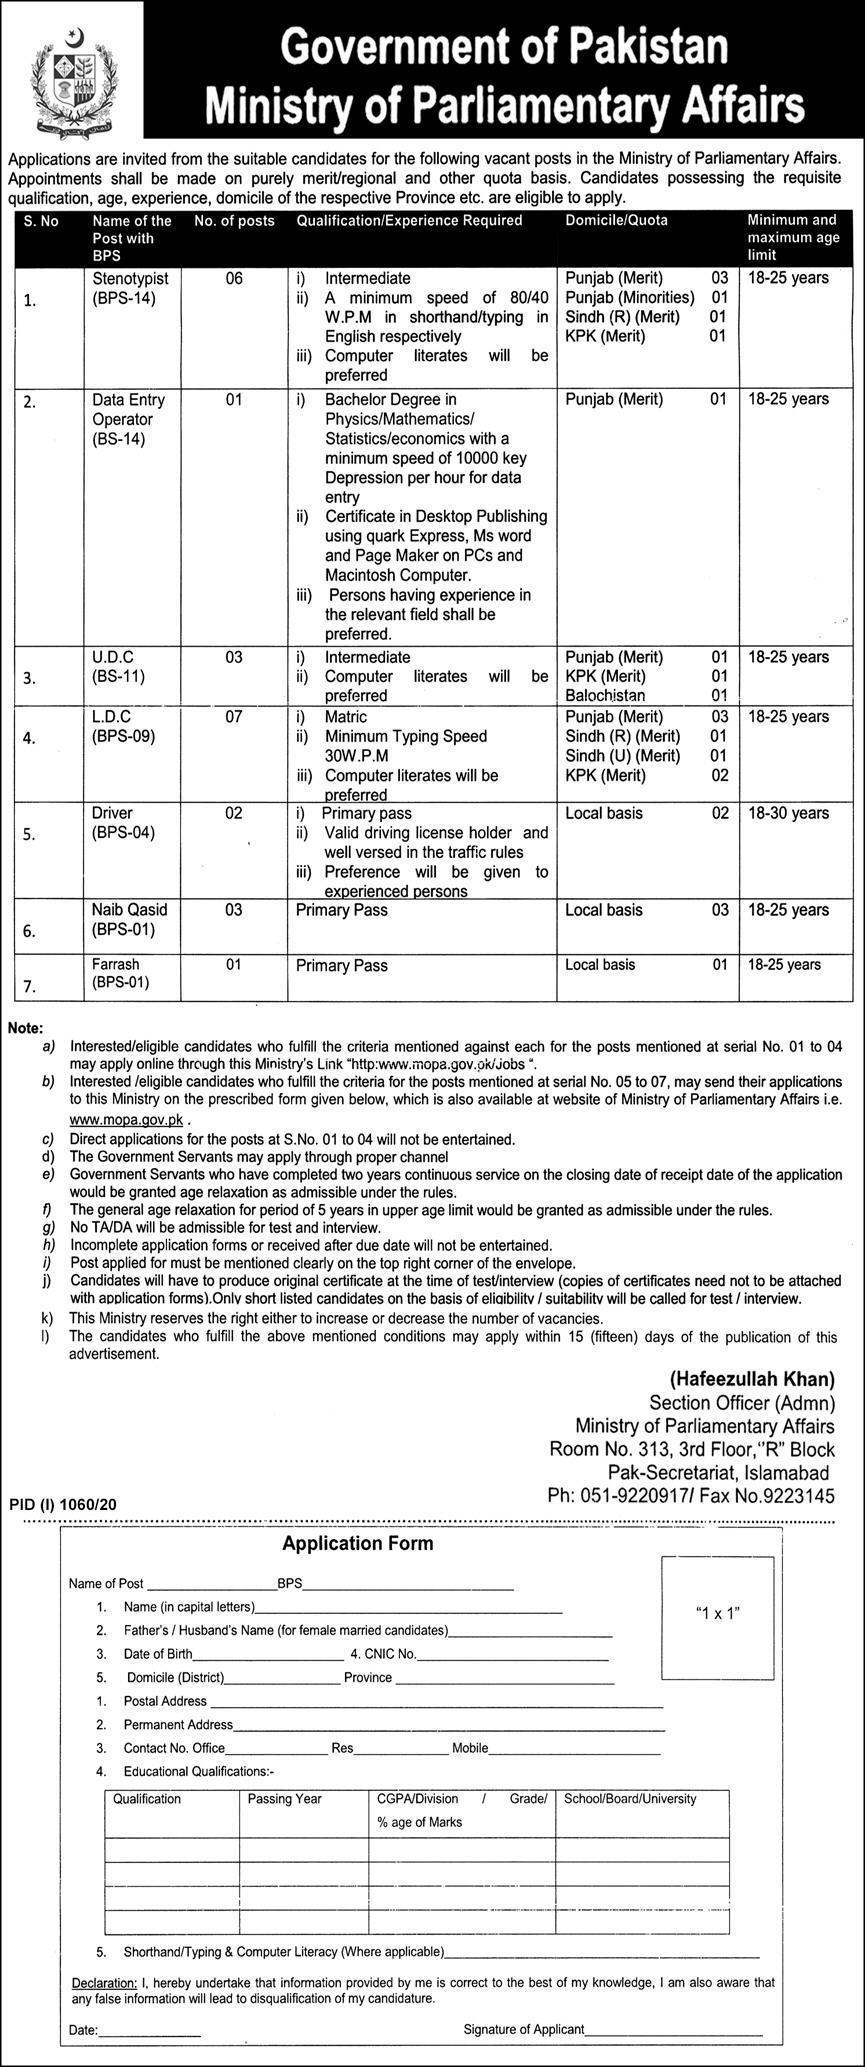 Ministry of Parliamentary Affairs Jobs 2020